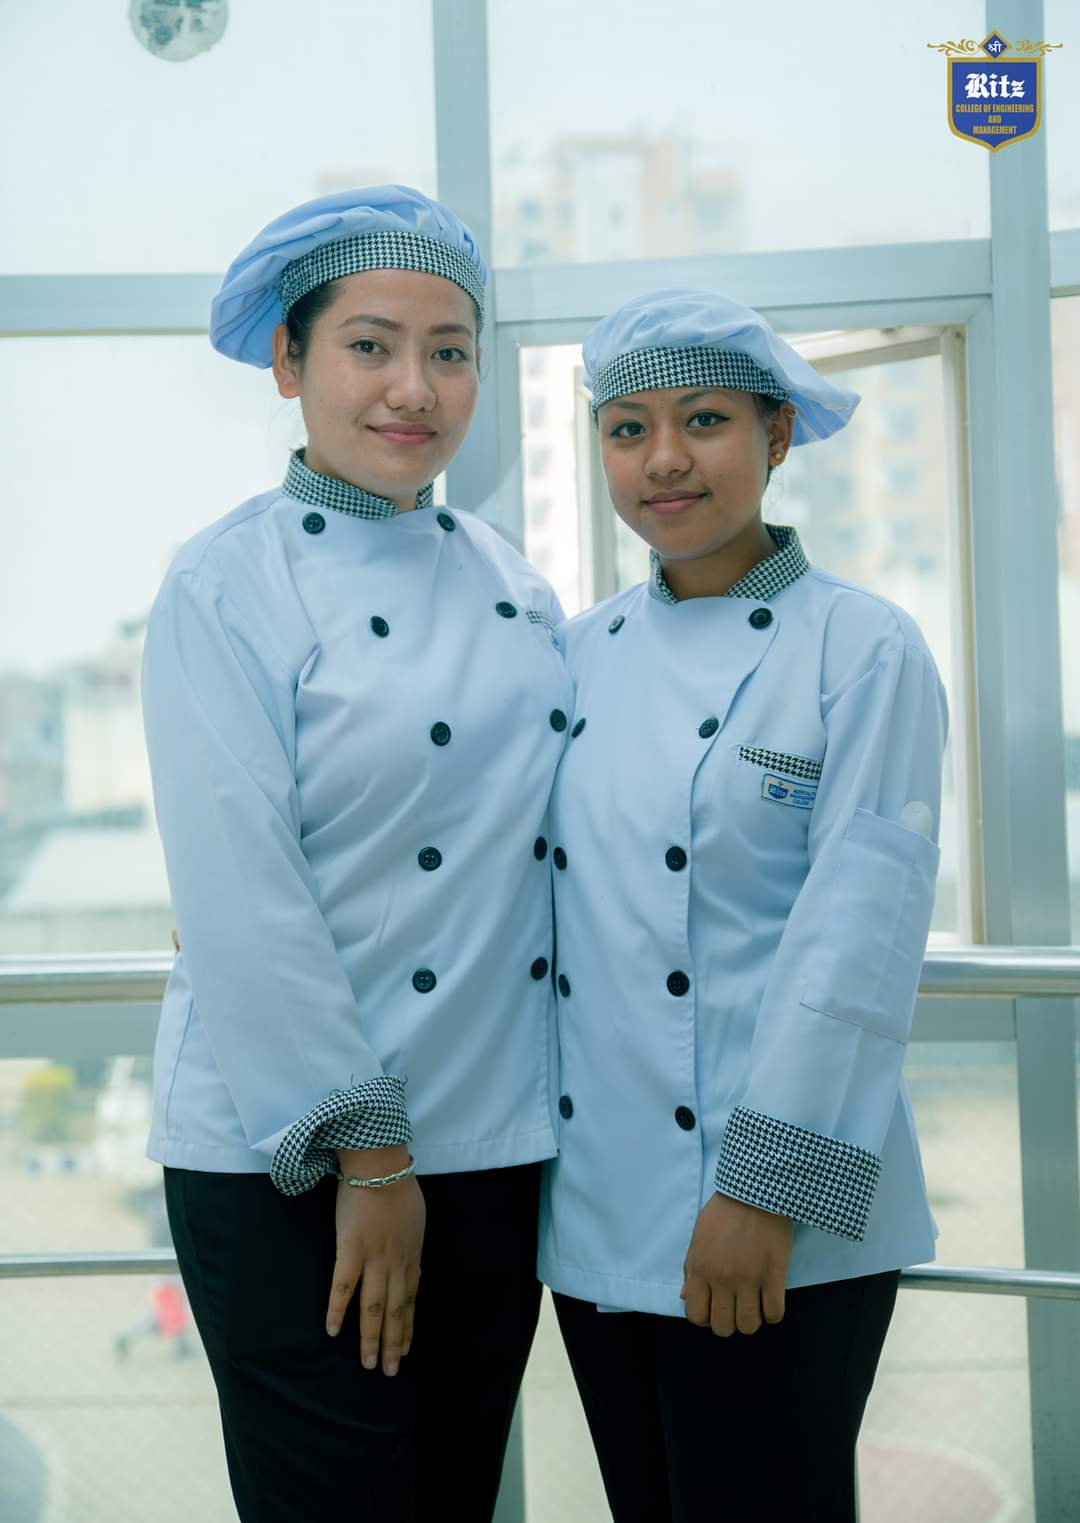 Bachelor of Hotel Management at Ritz College